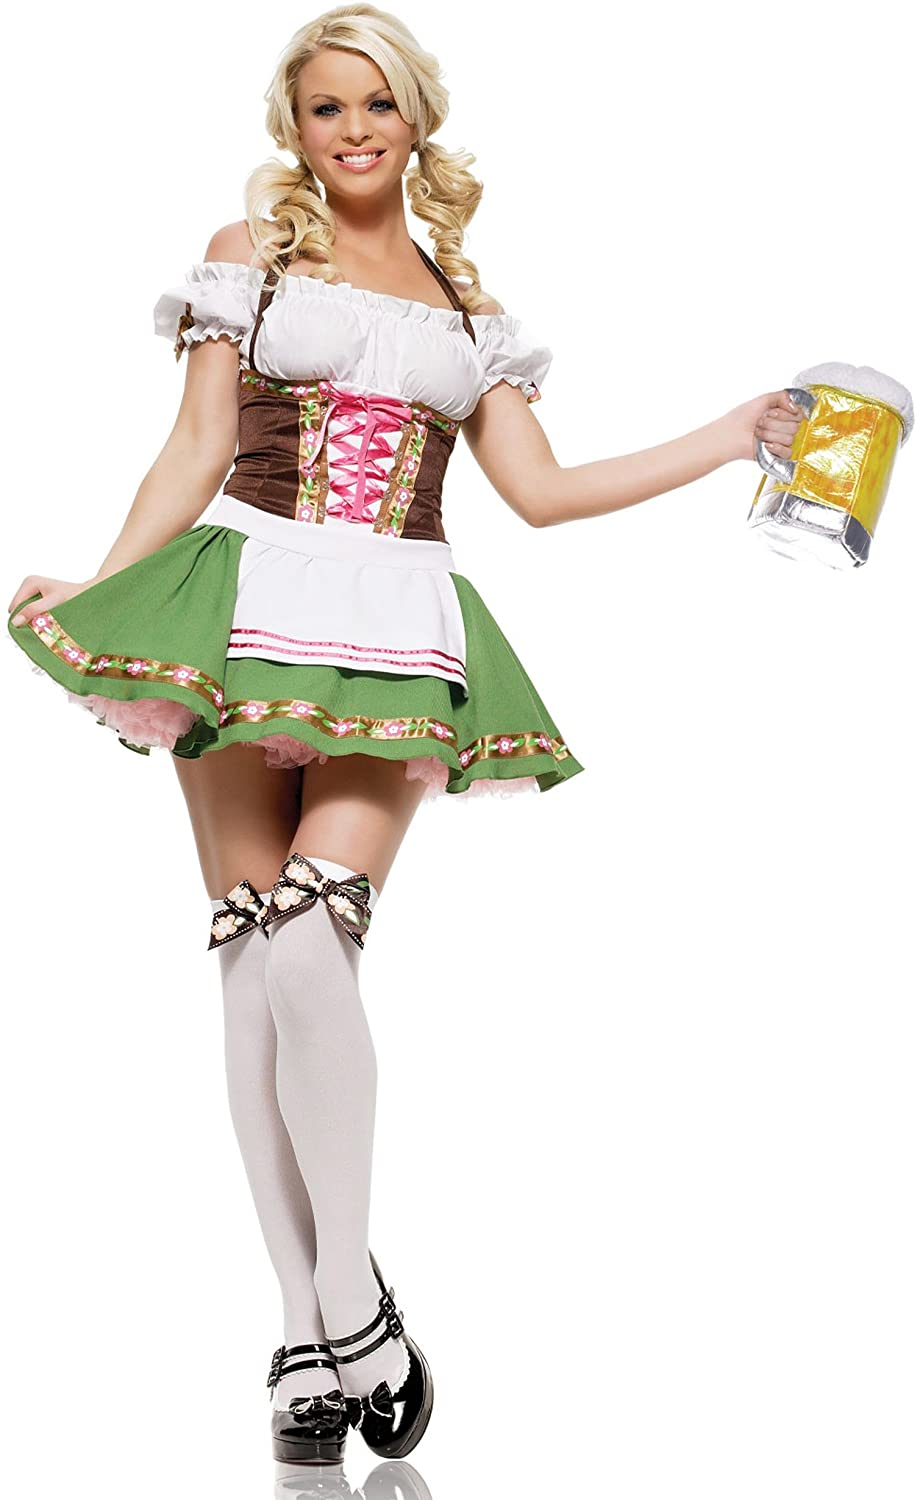 PINSE St. Patrick's Day Oktoberfest Cute Beer Girl Servant Maid Costume (L)